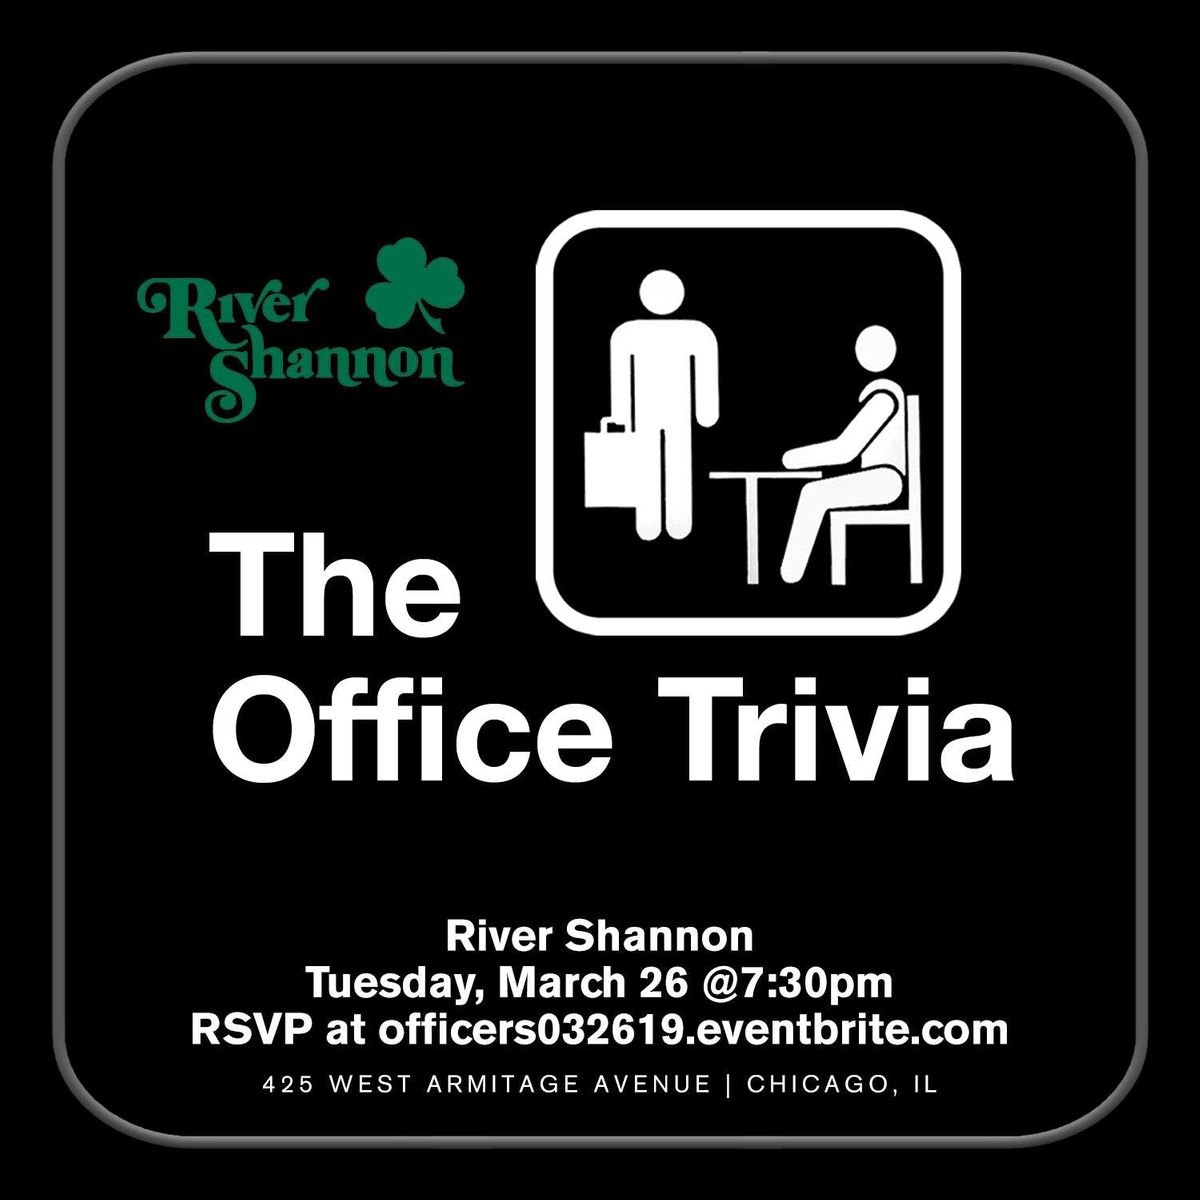 The Office Trivia at River Shannon